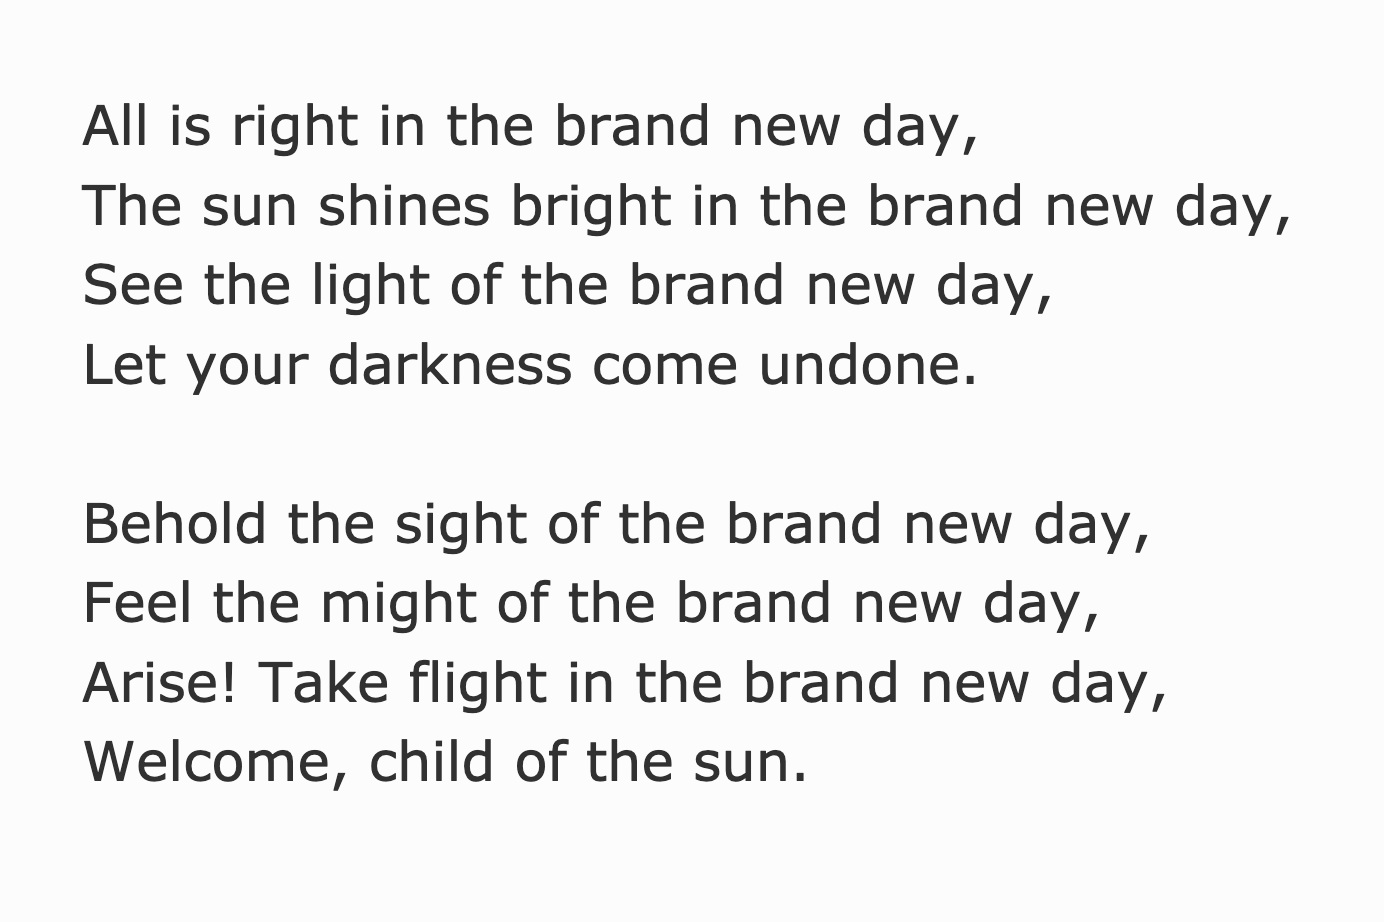 """Excerpt from the Poem """"Born Again / Phoenix Rising"""" written by Megan Smith in 2012."""